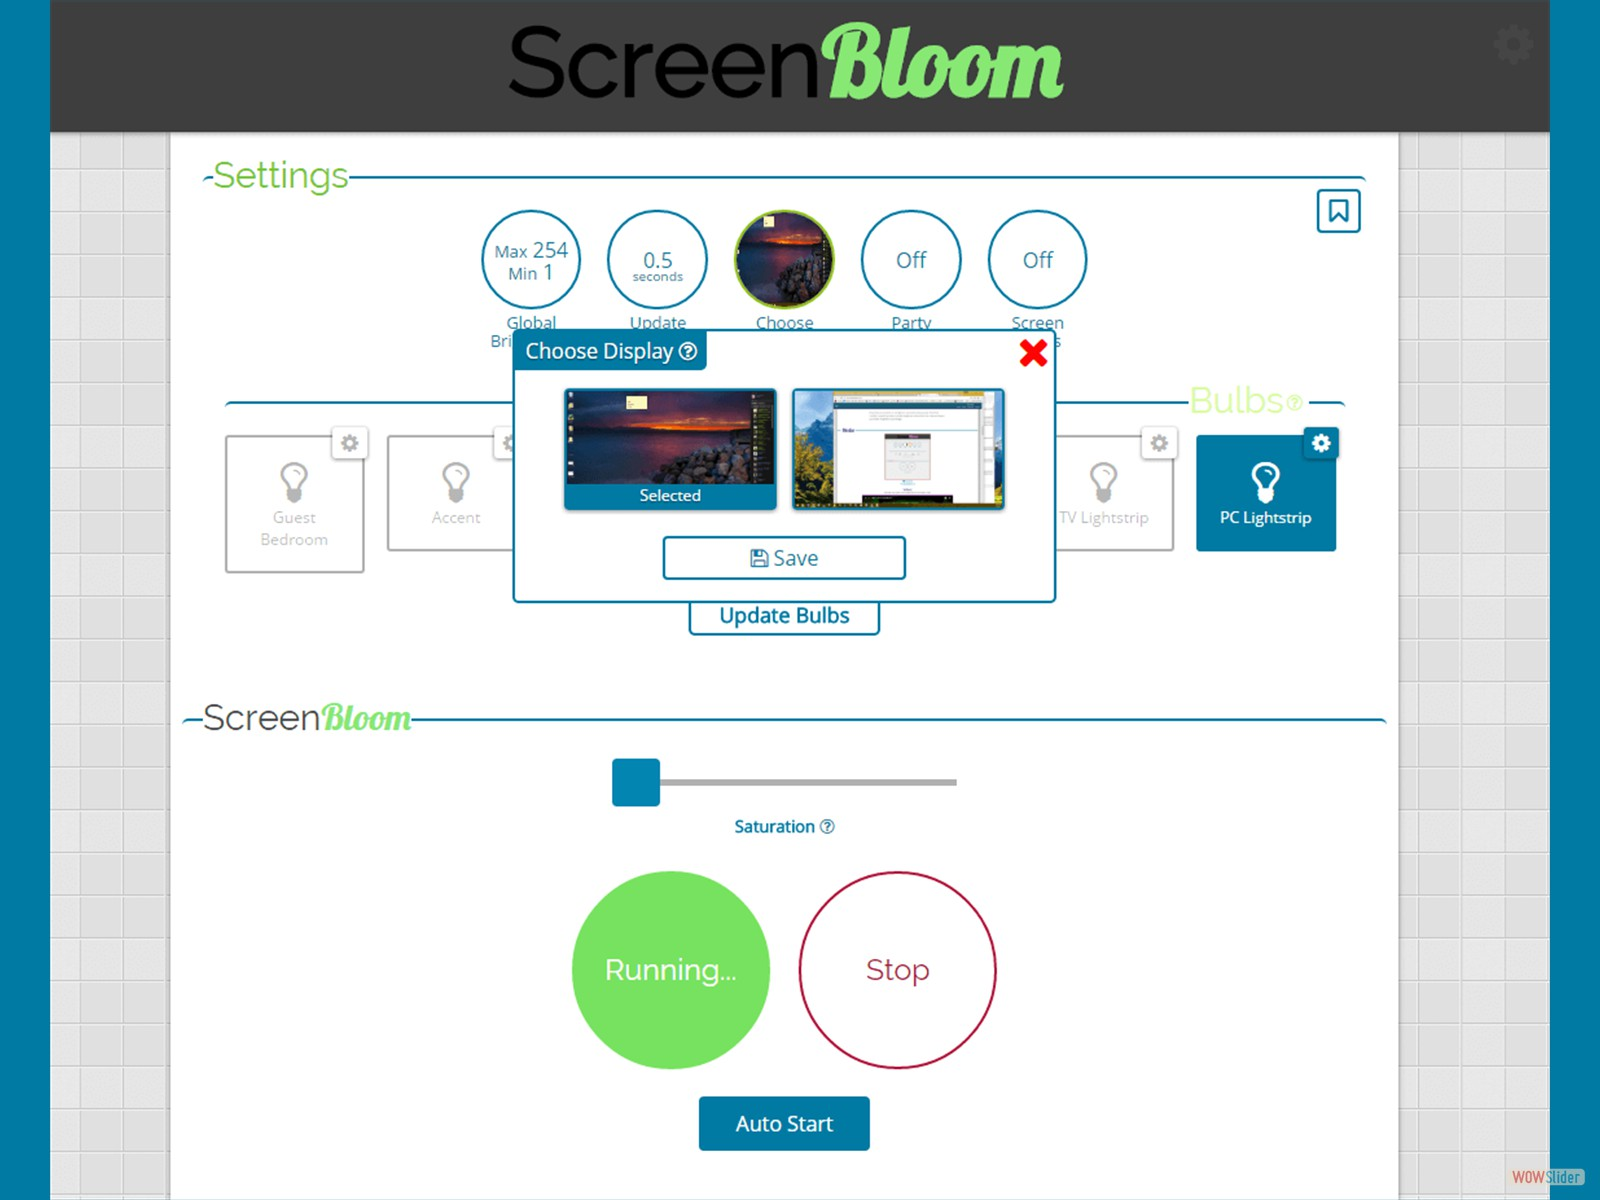 ScreenBloom